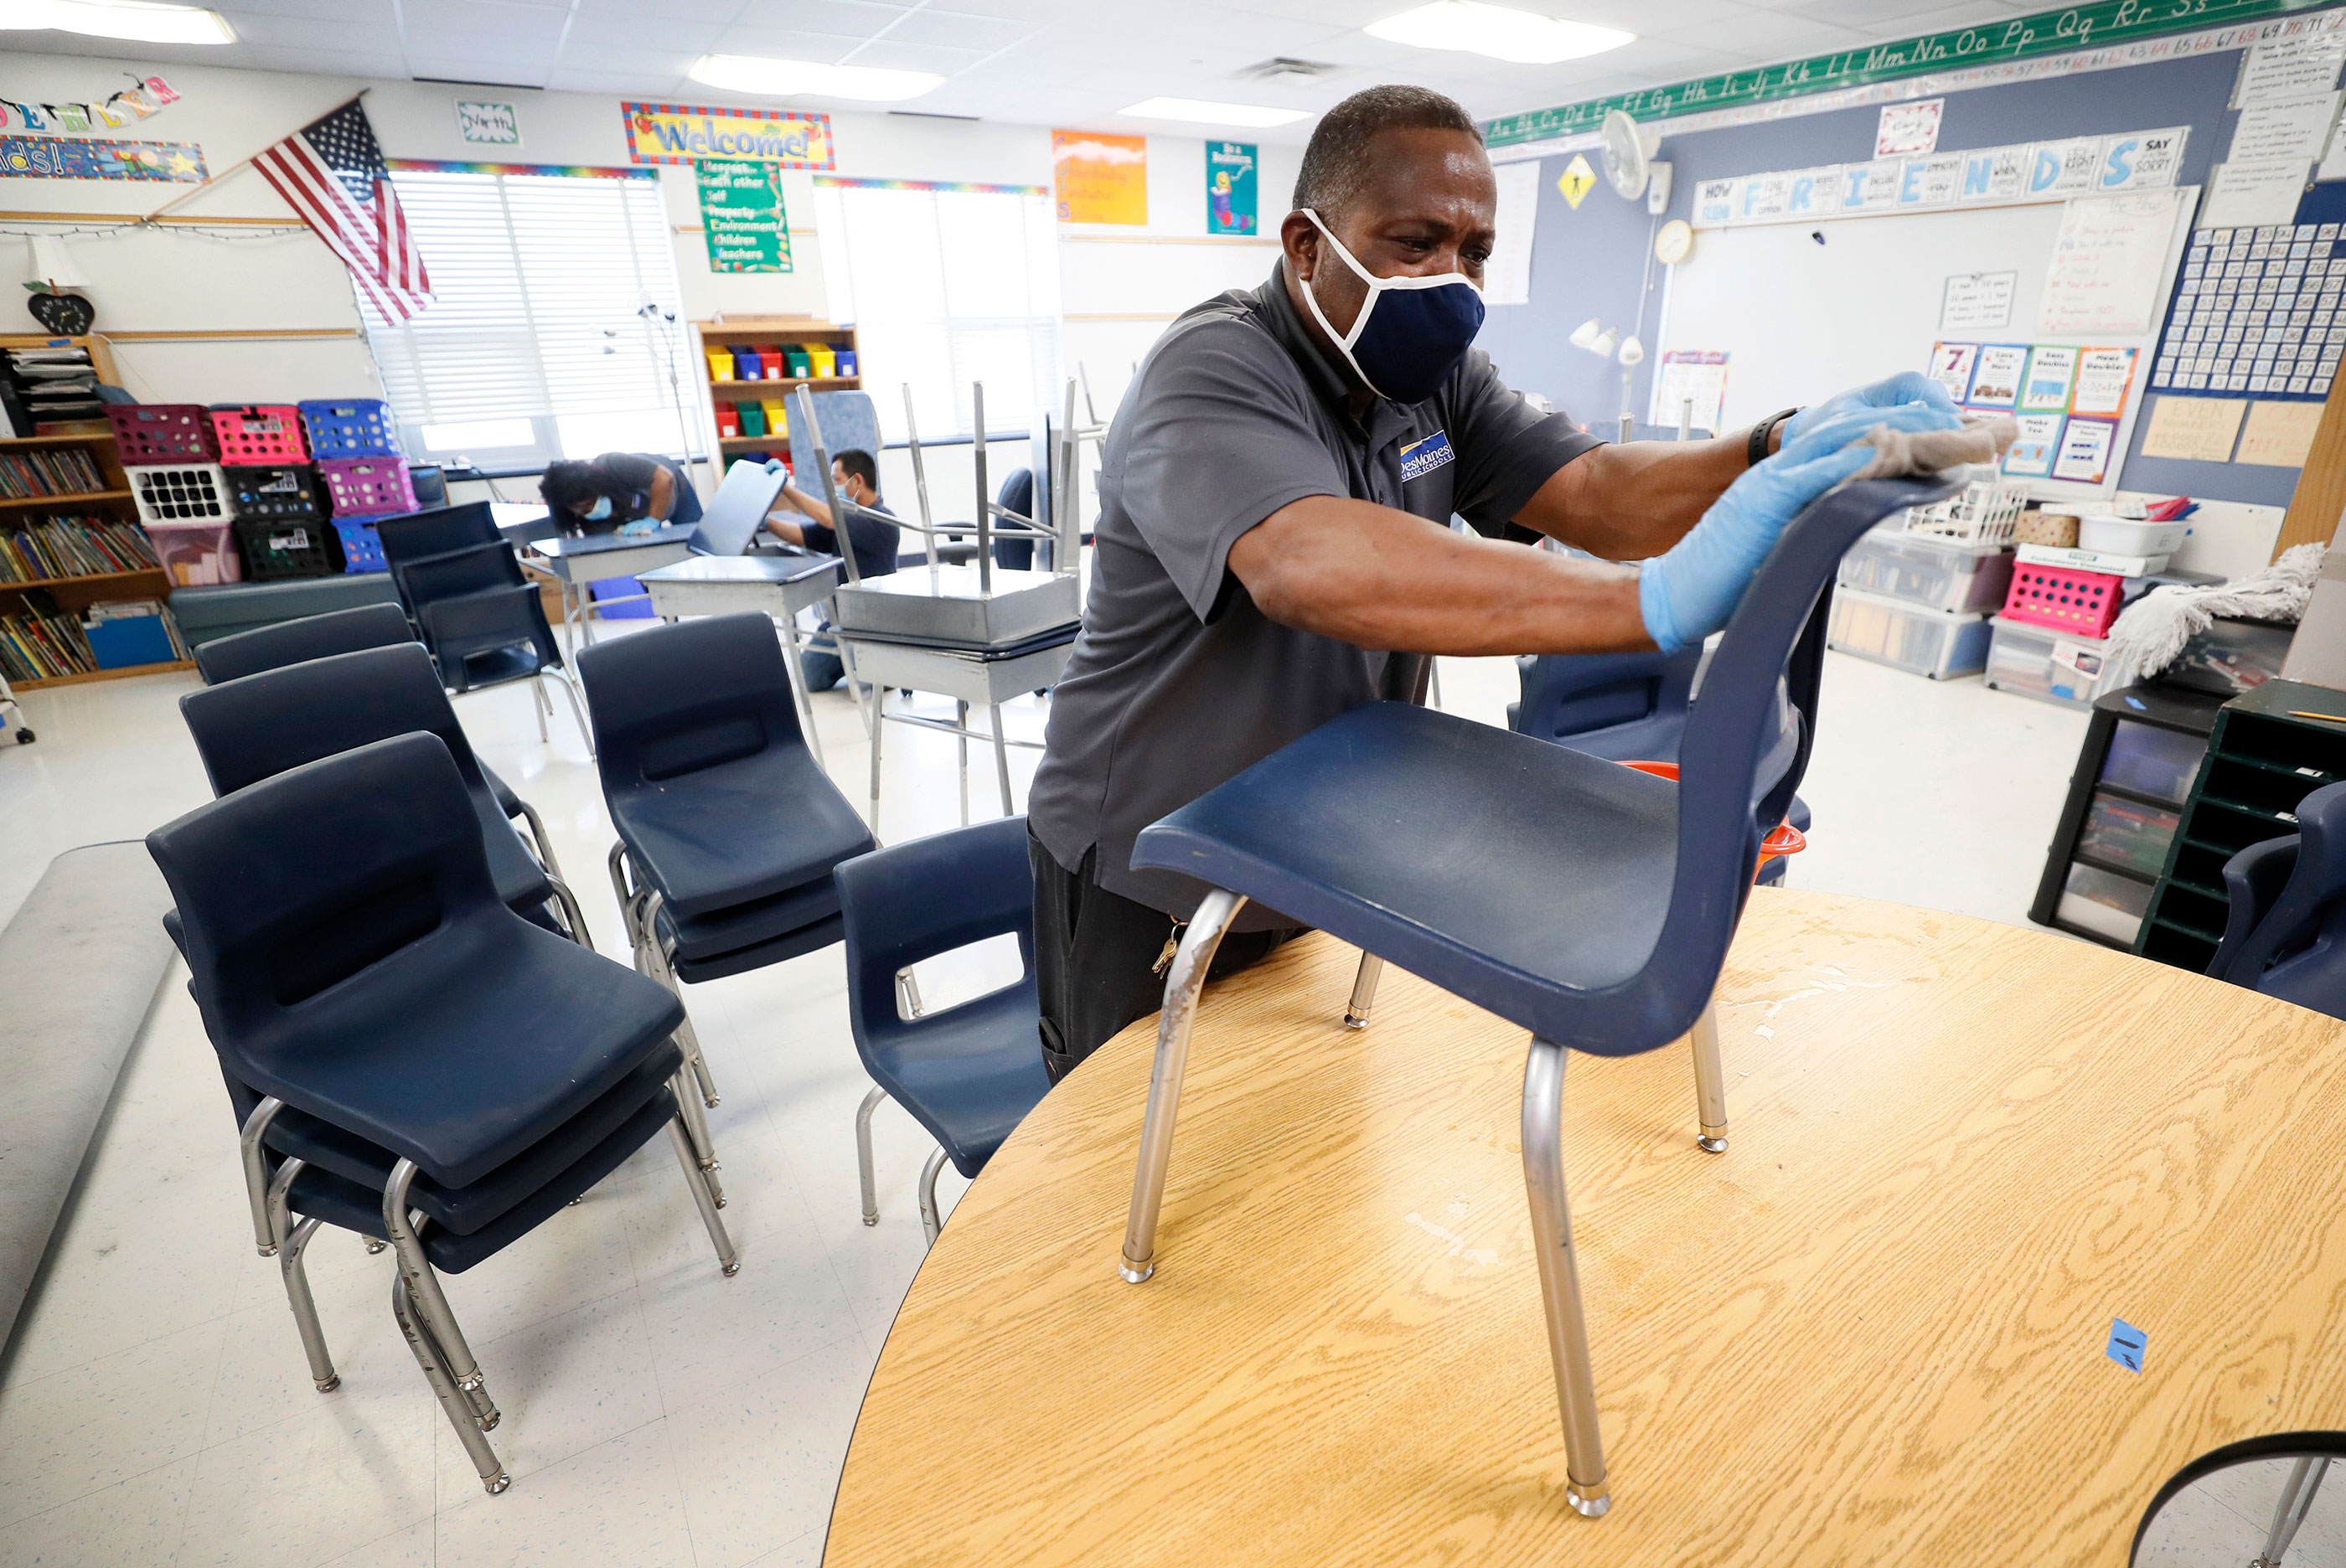 Custodian Tracy Harris cleans chairs in a classroom at Brubaker Elementary School on July 8 in Des Moines, Iowa.